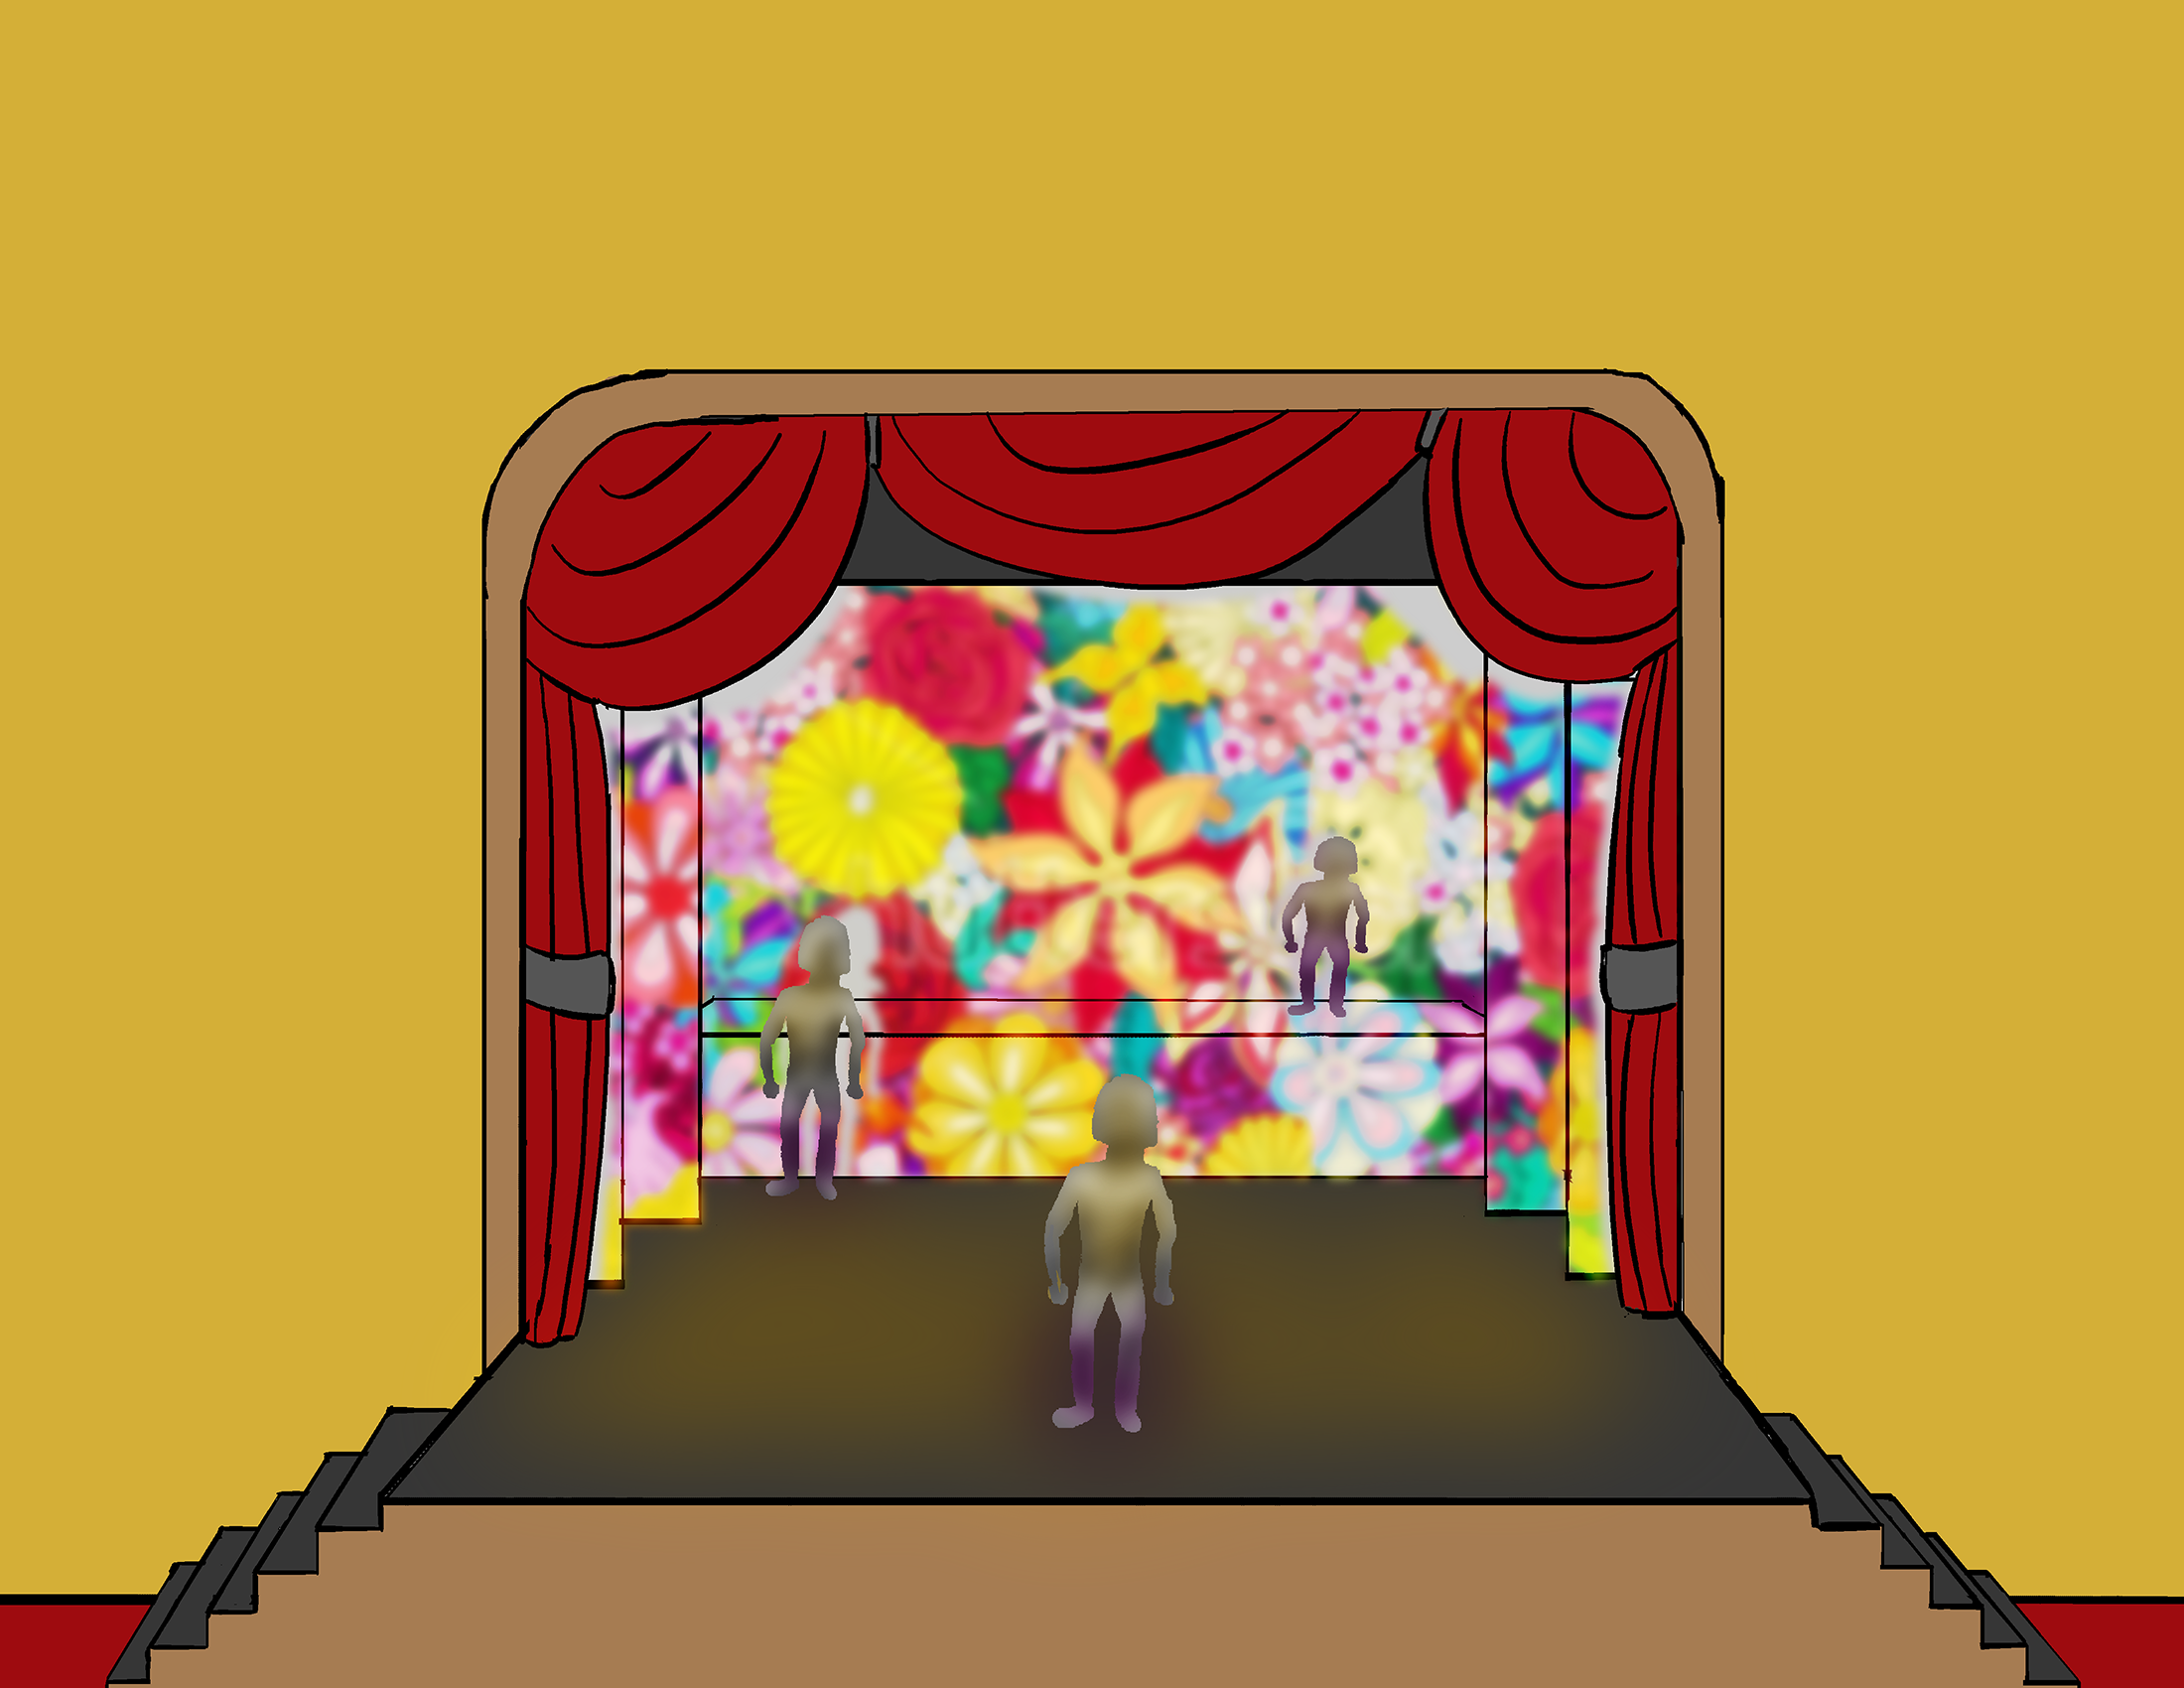 Storyboard - Psychelic Projections